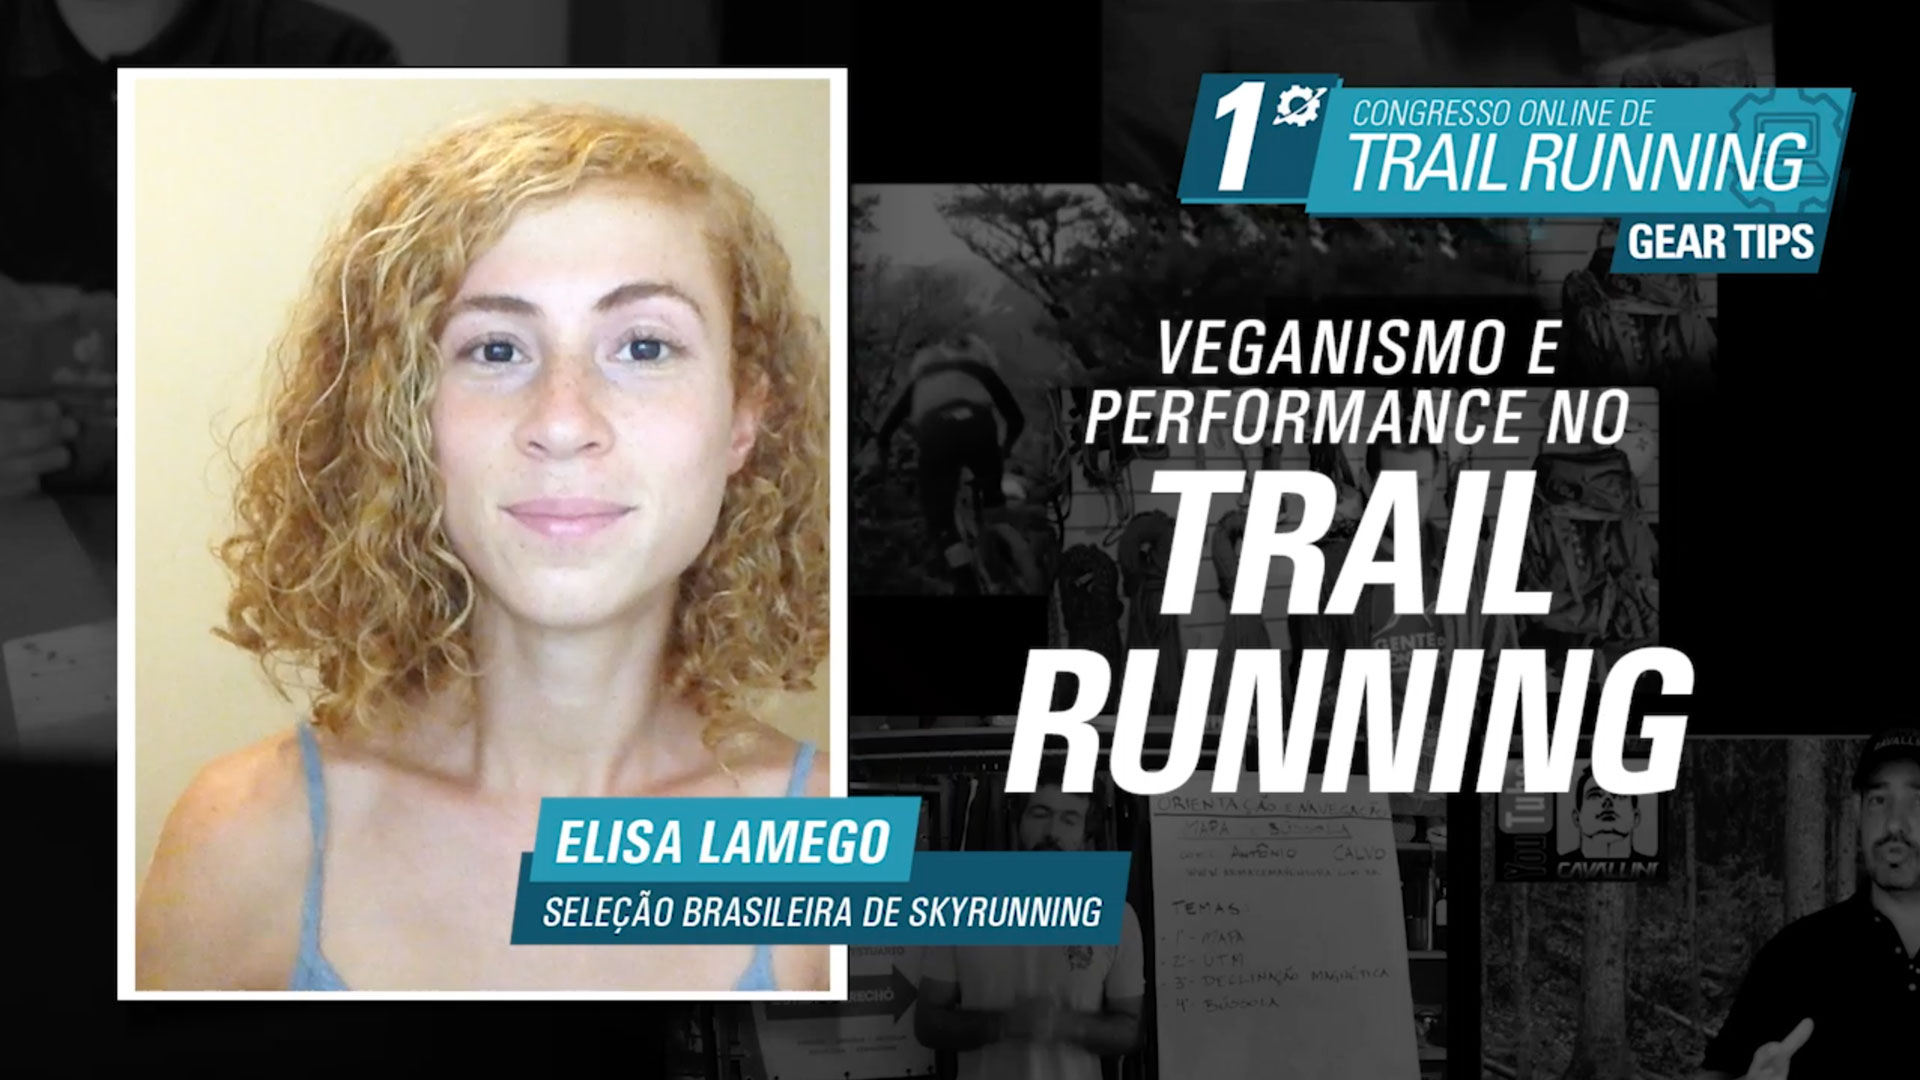 Veganismo e Performance no Trail Running